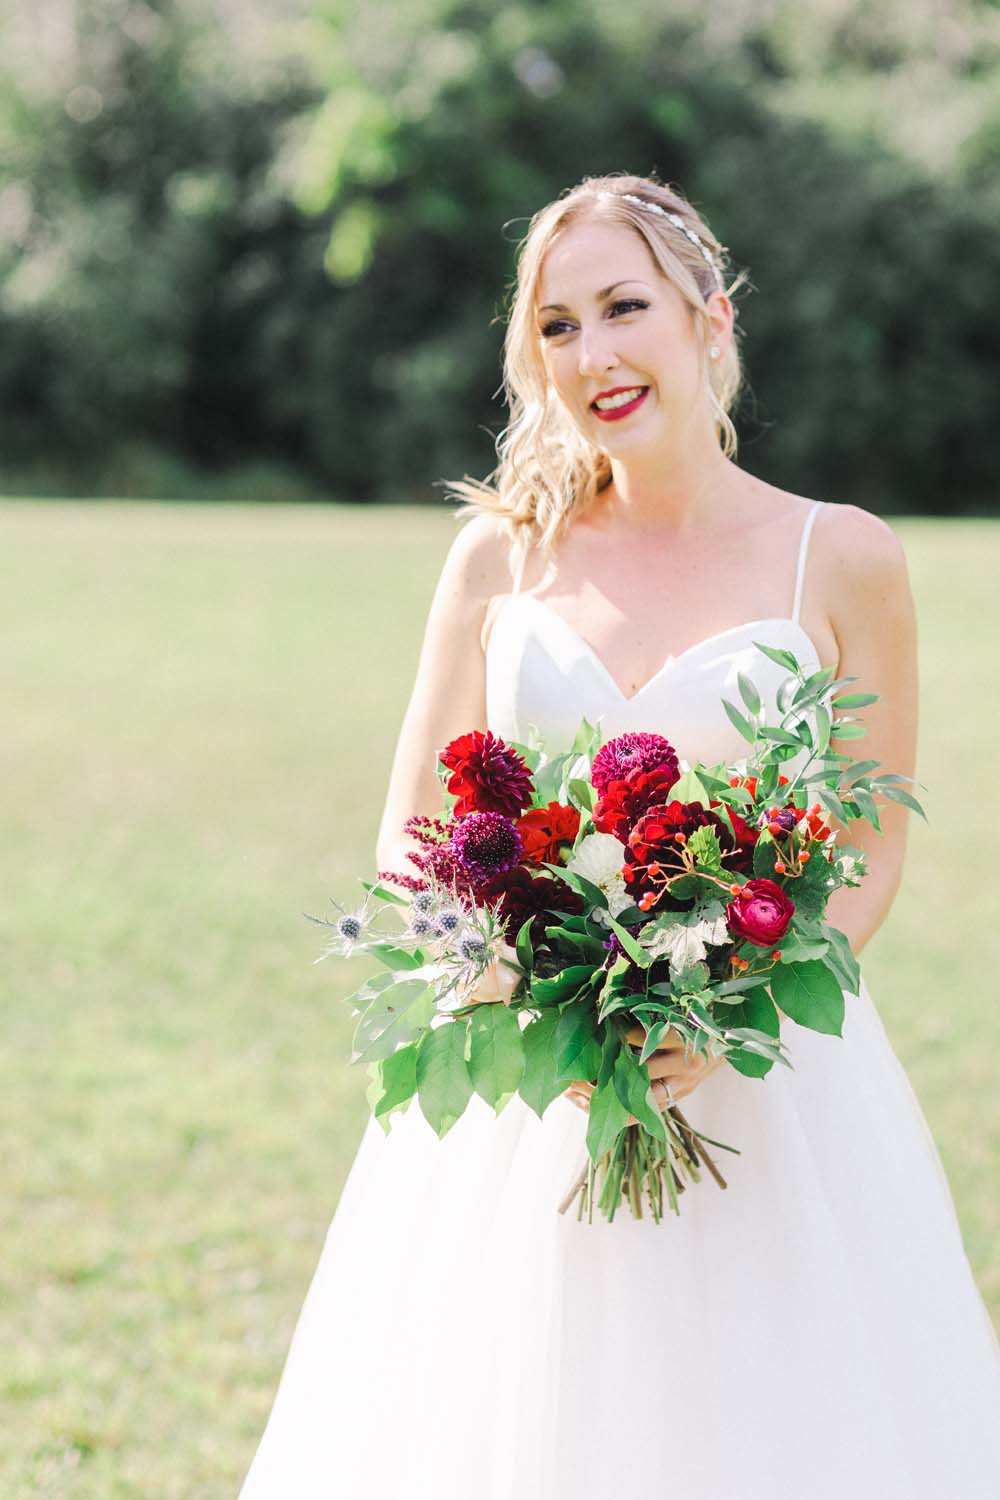 An Enchanting Vineyard Wedding in Ottawa - Bride